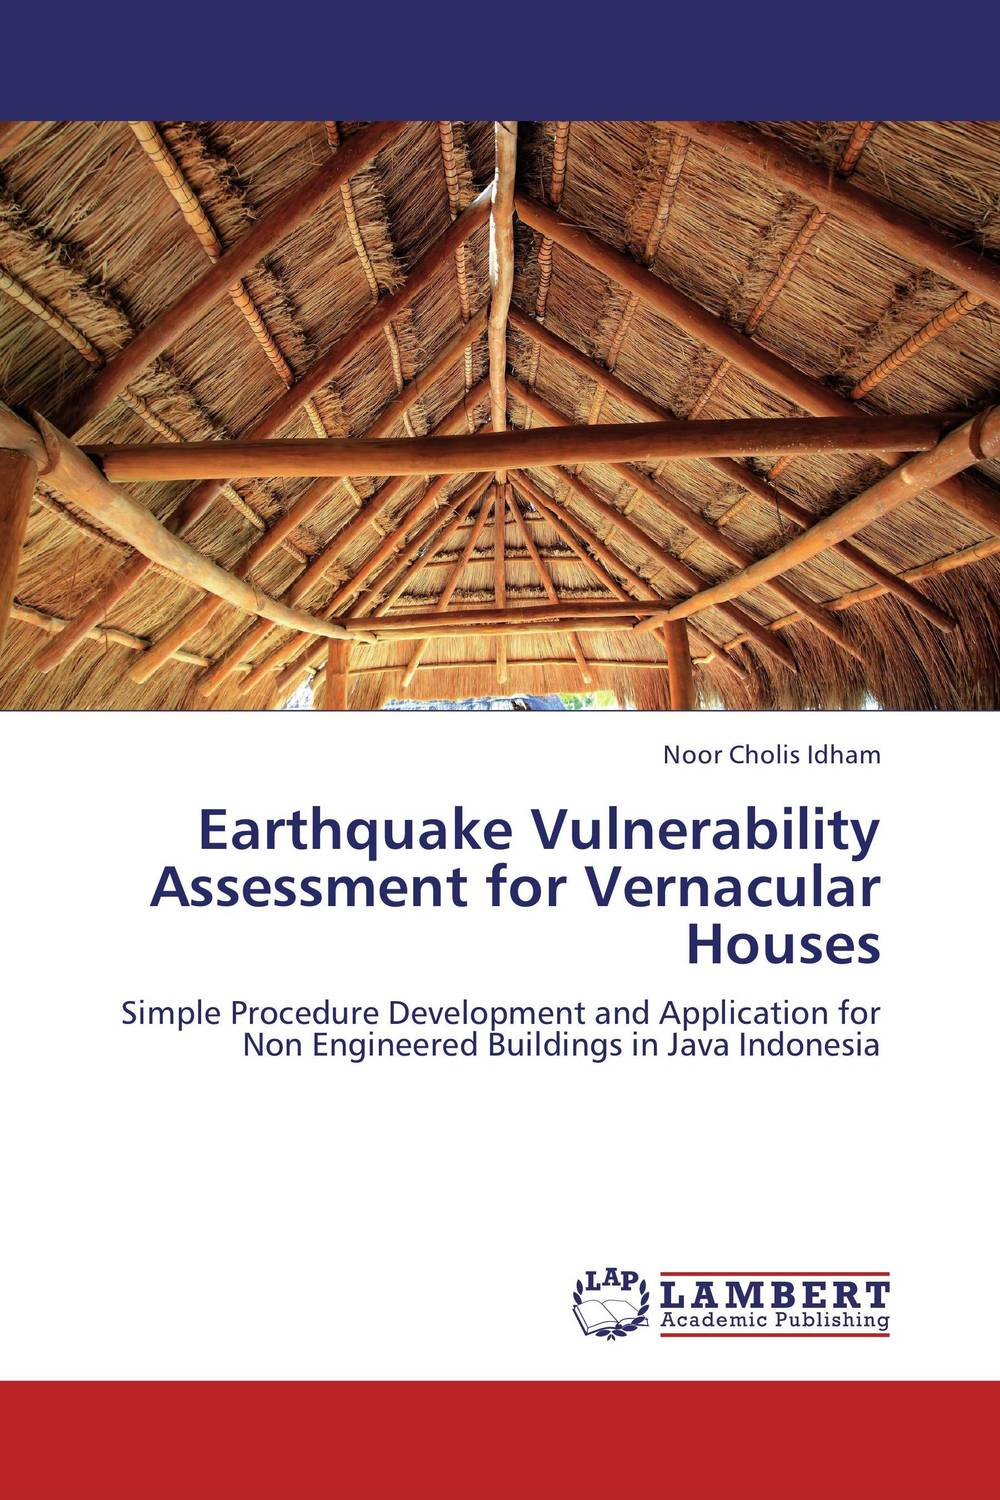 цены Earthquake Vulnerability Assessment for Vernacular Houses